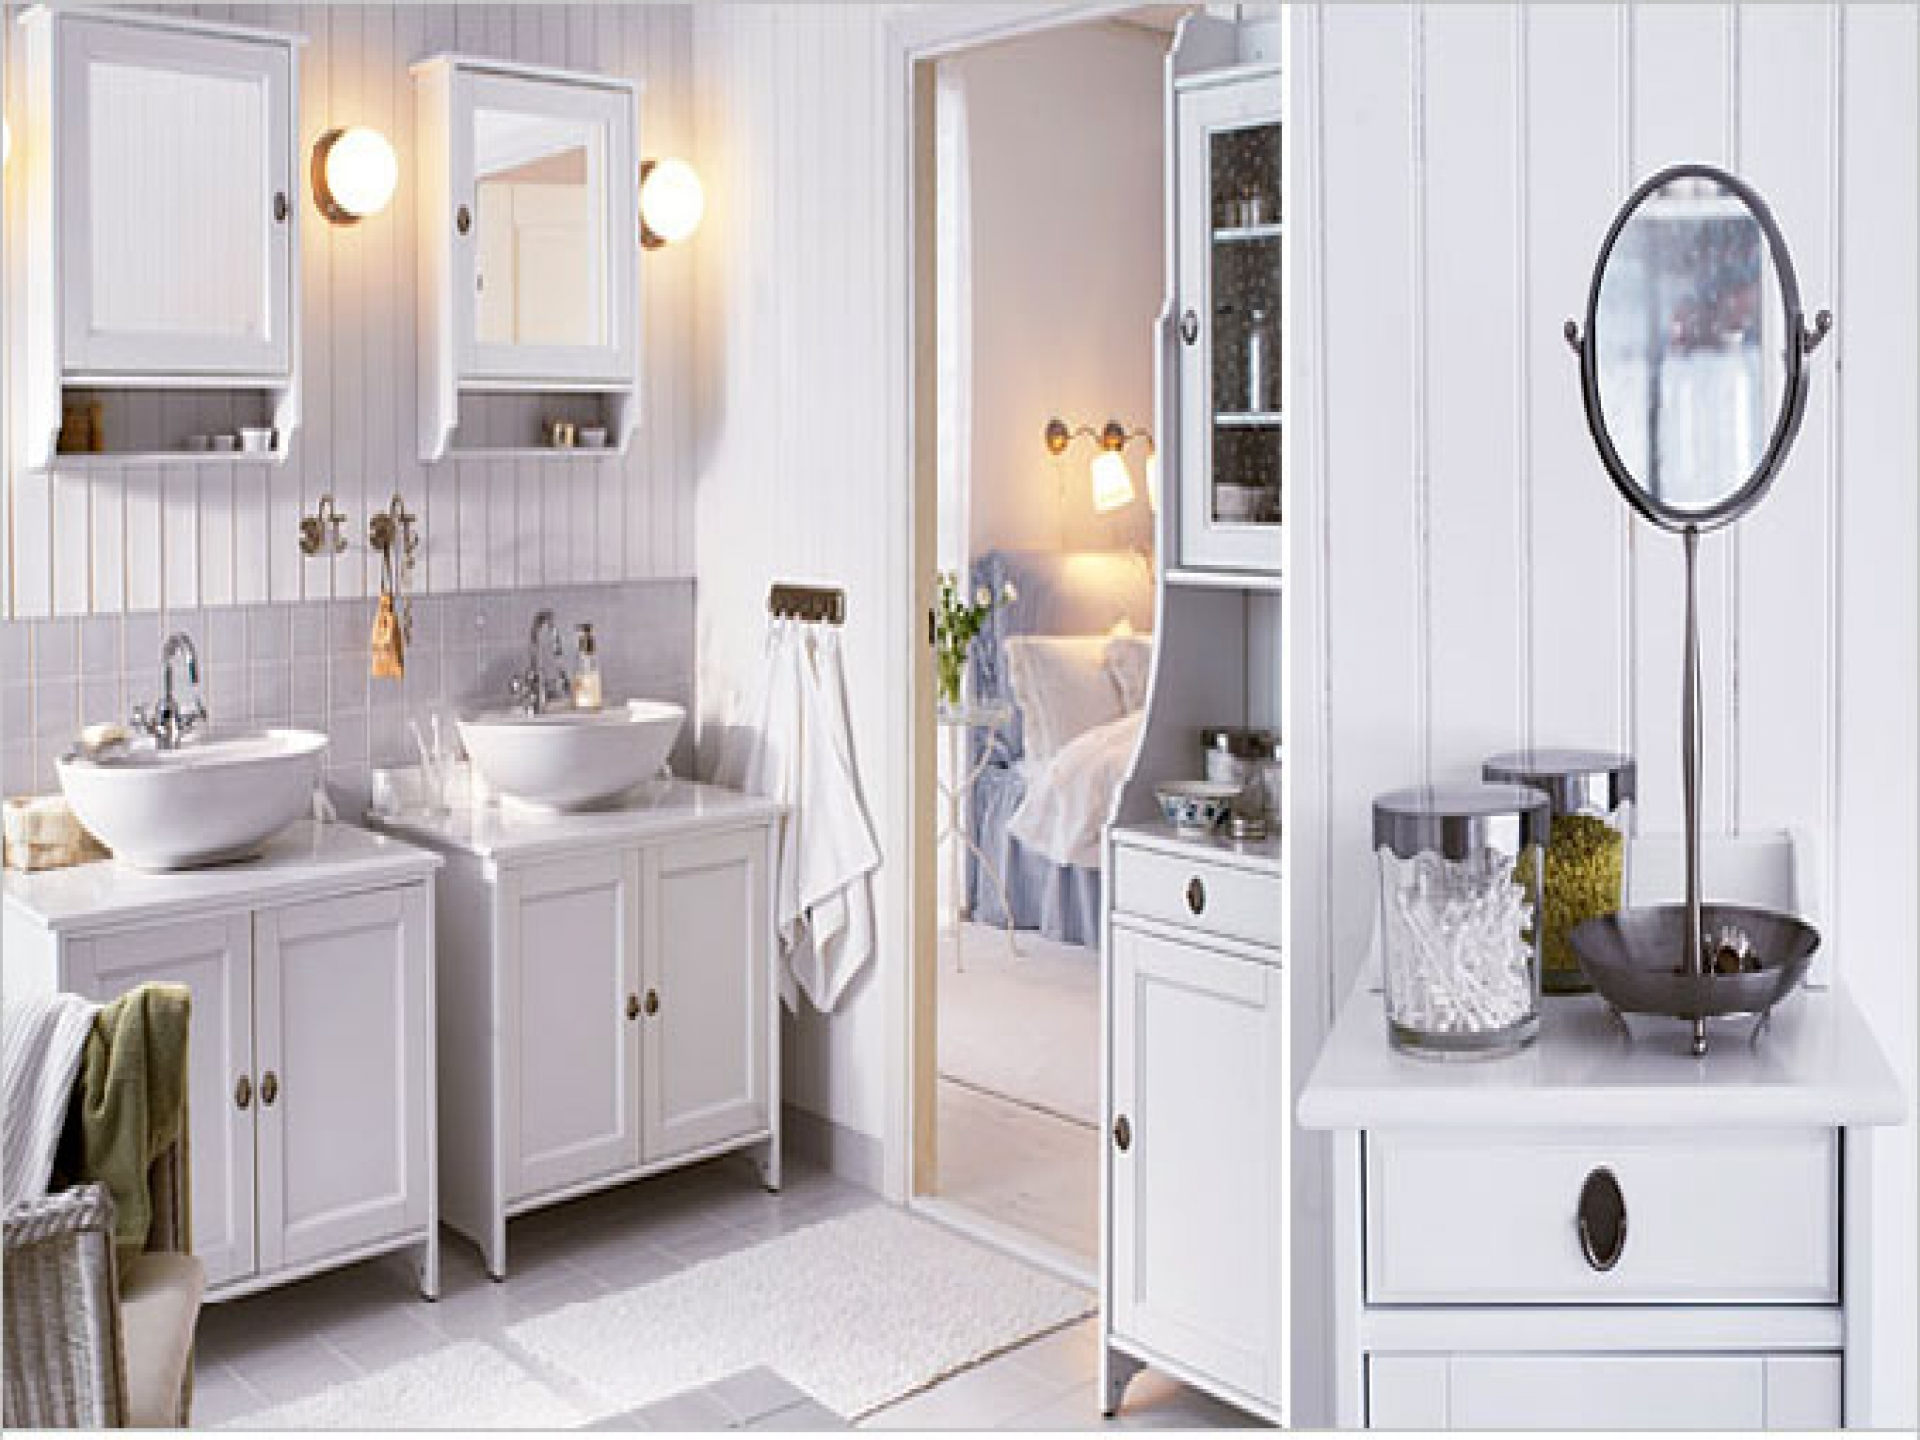 Ikea Bath Cabinet Invades Every Bathroom with Dignity ...